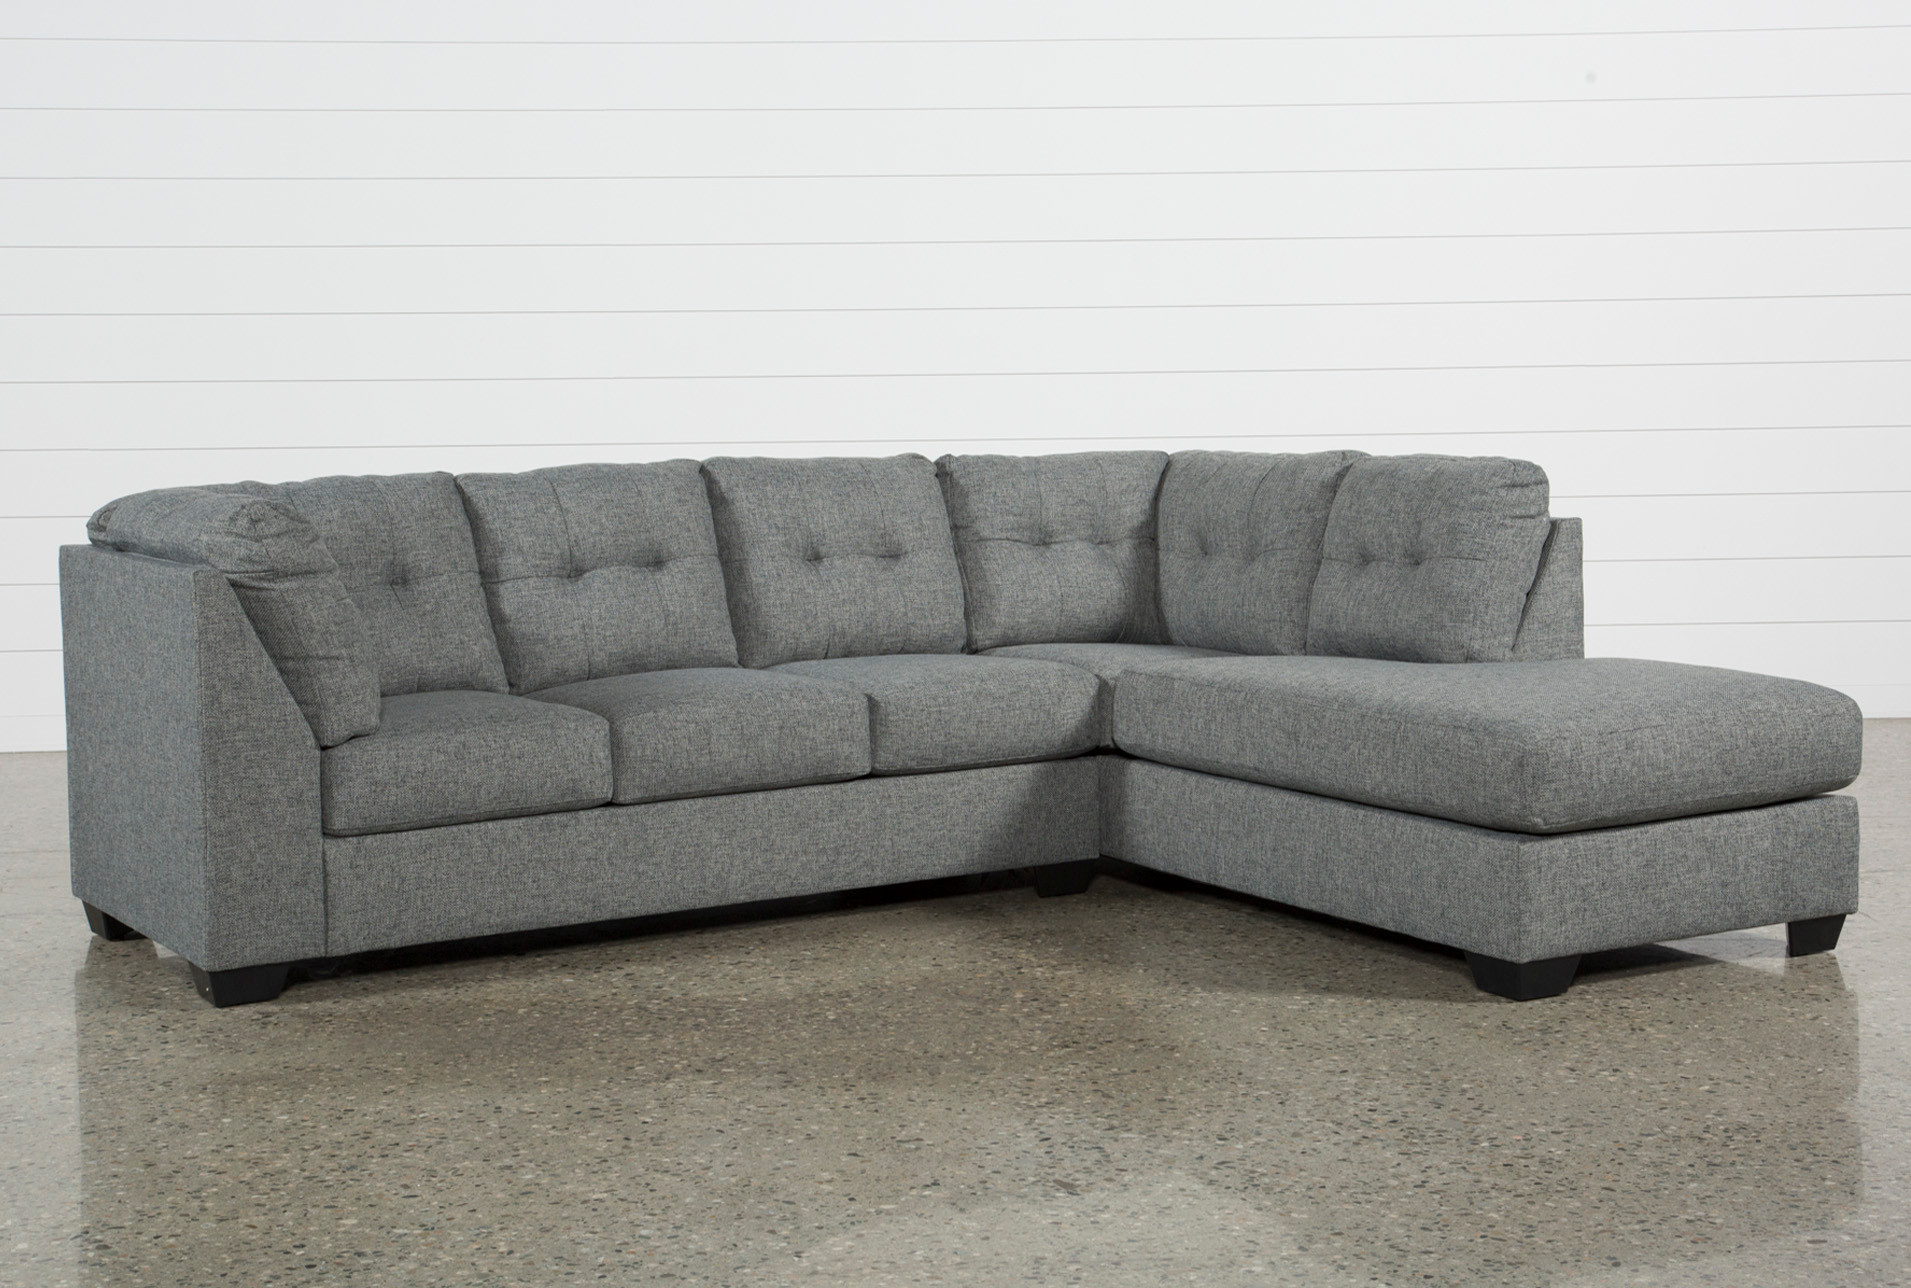 Arrowmask 2 Piece Sectional W/Raf Chaise